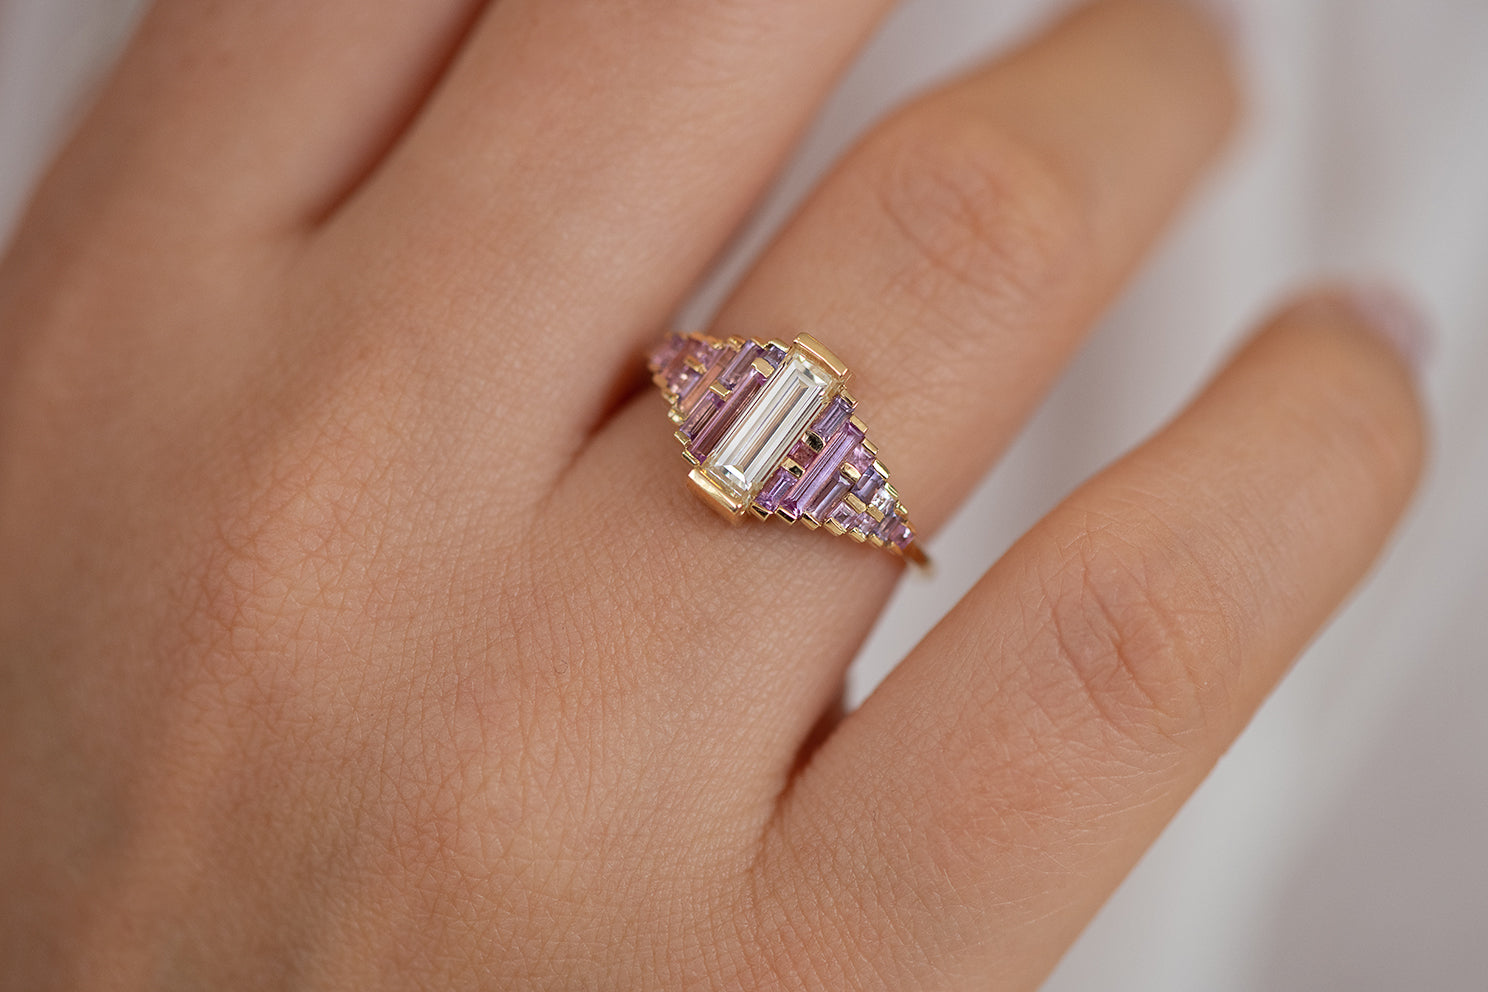 Purple and Lilac Sapphire Ring with Baguette Diamond Up Close on Hand